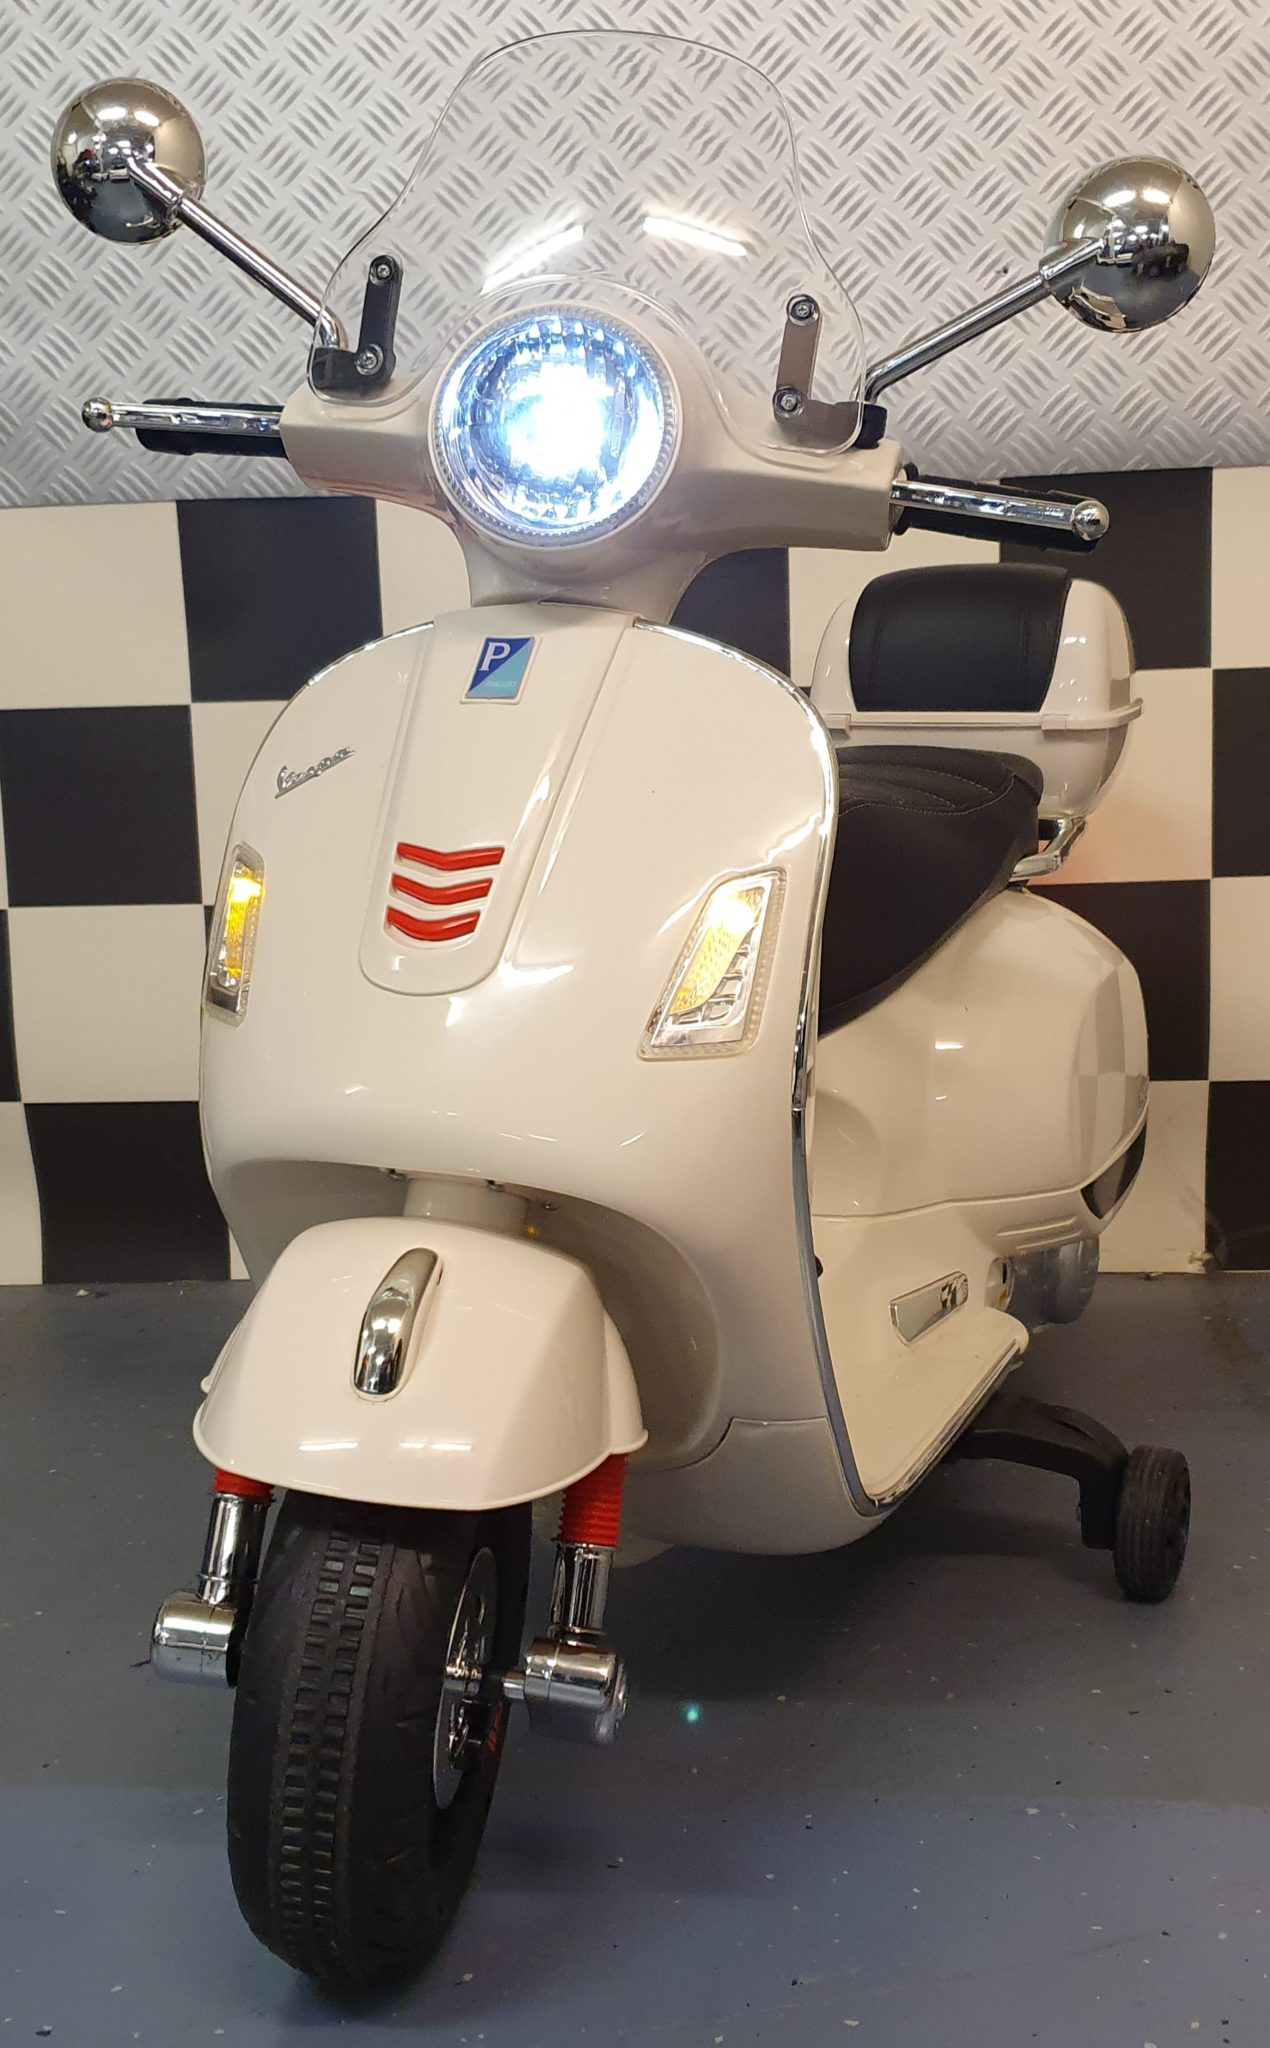 Vespa kinder scooter 12 volt wit